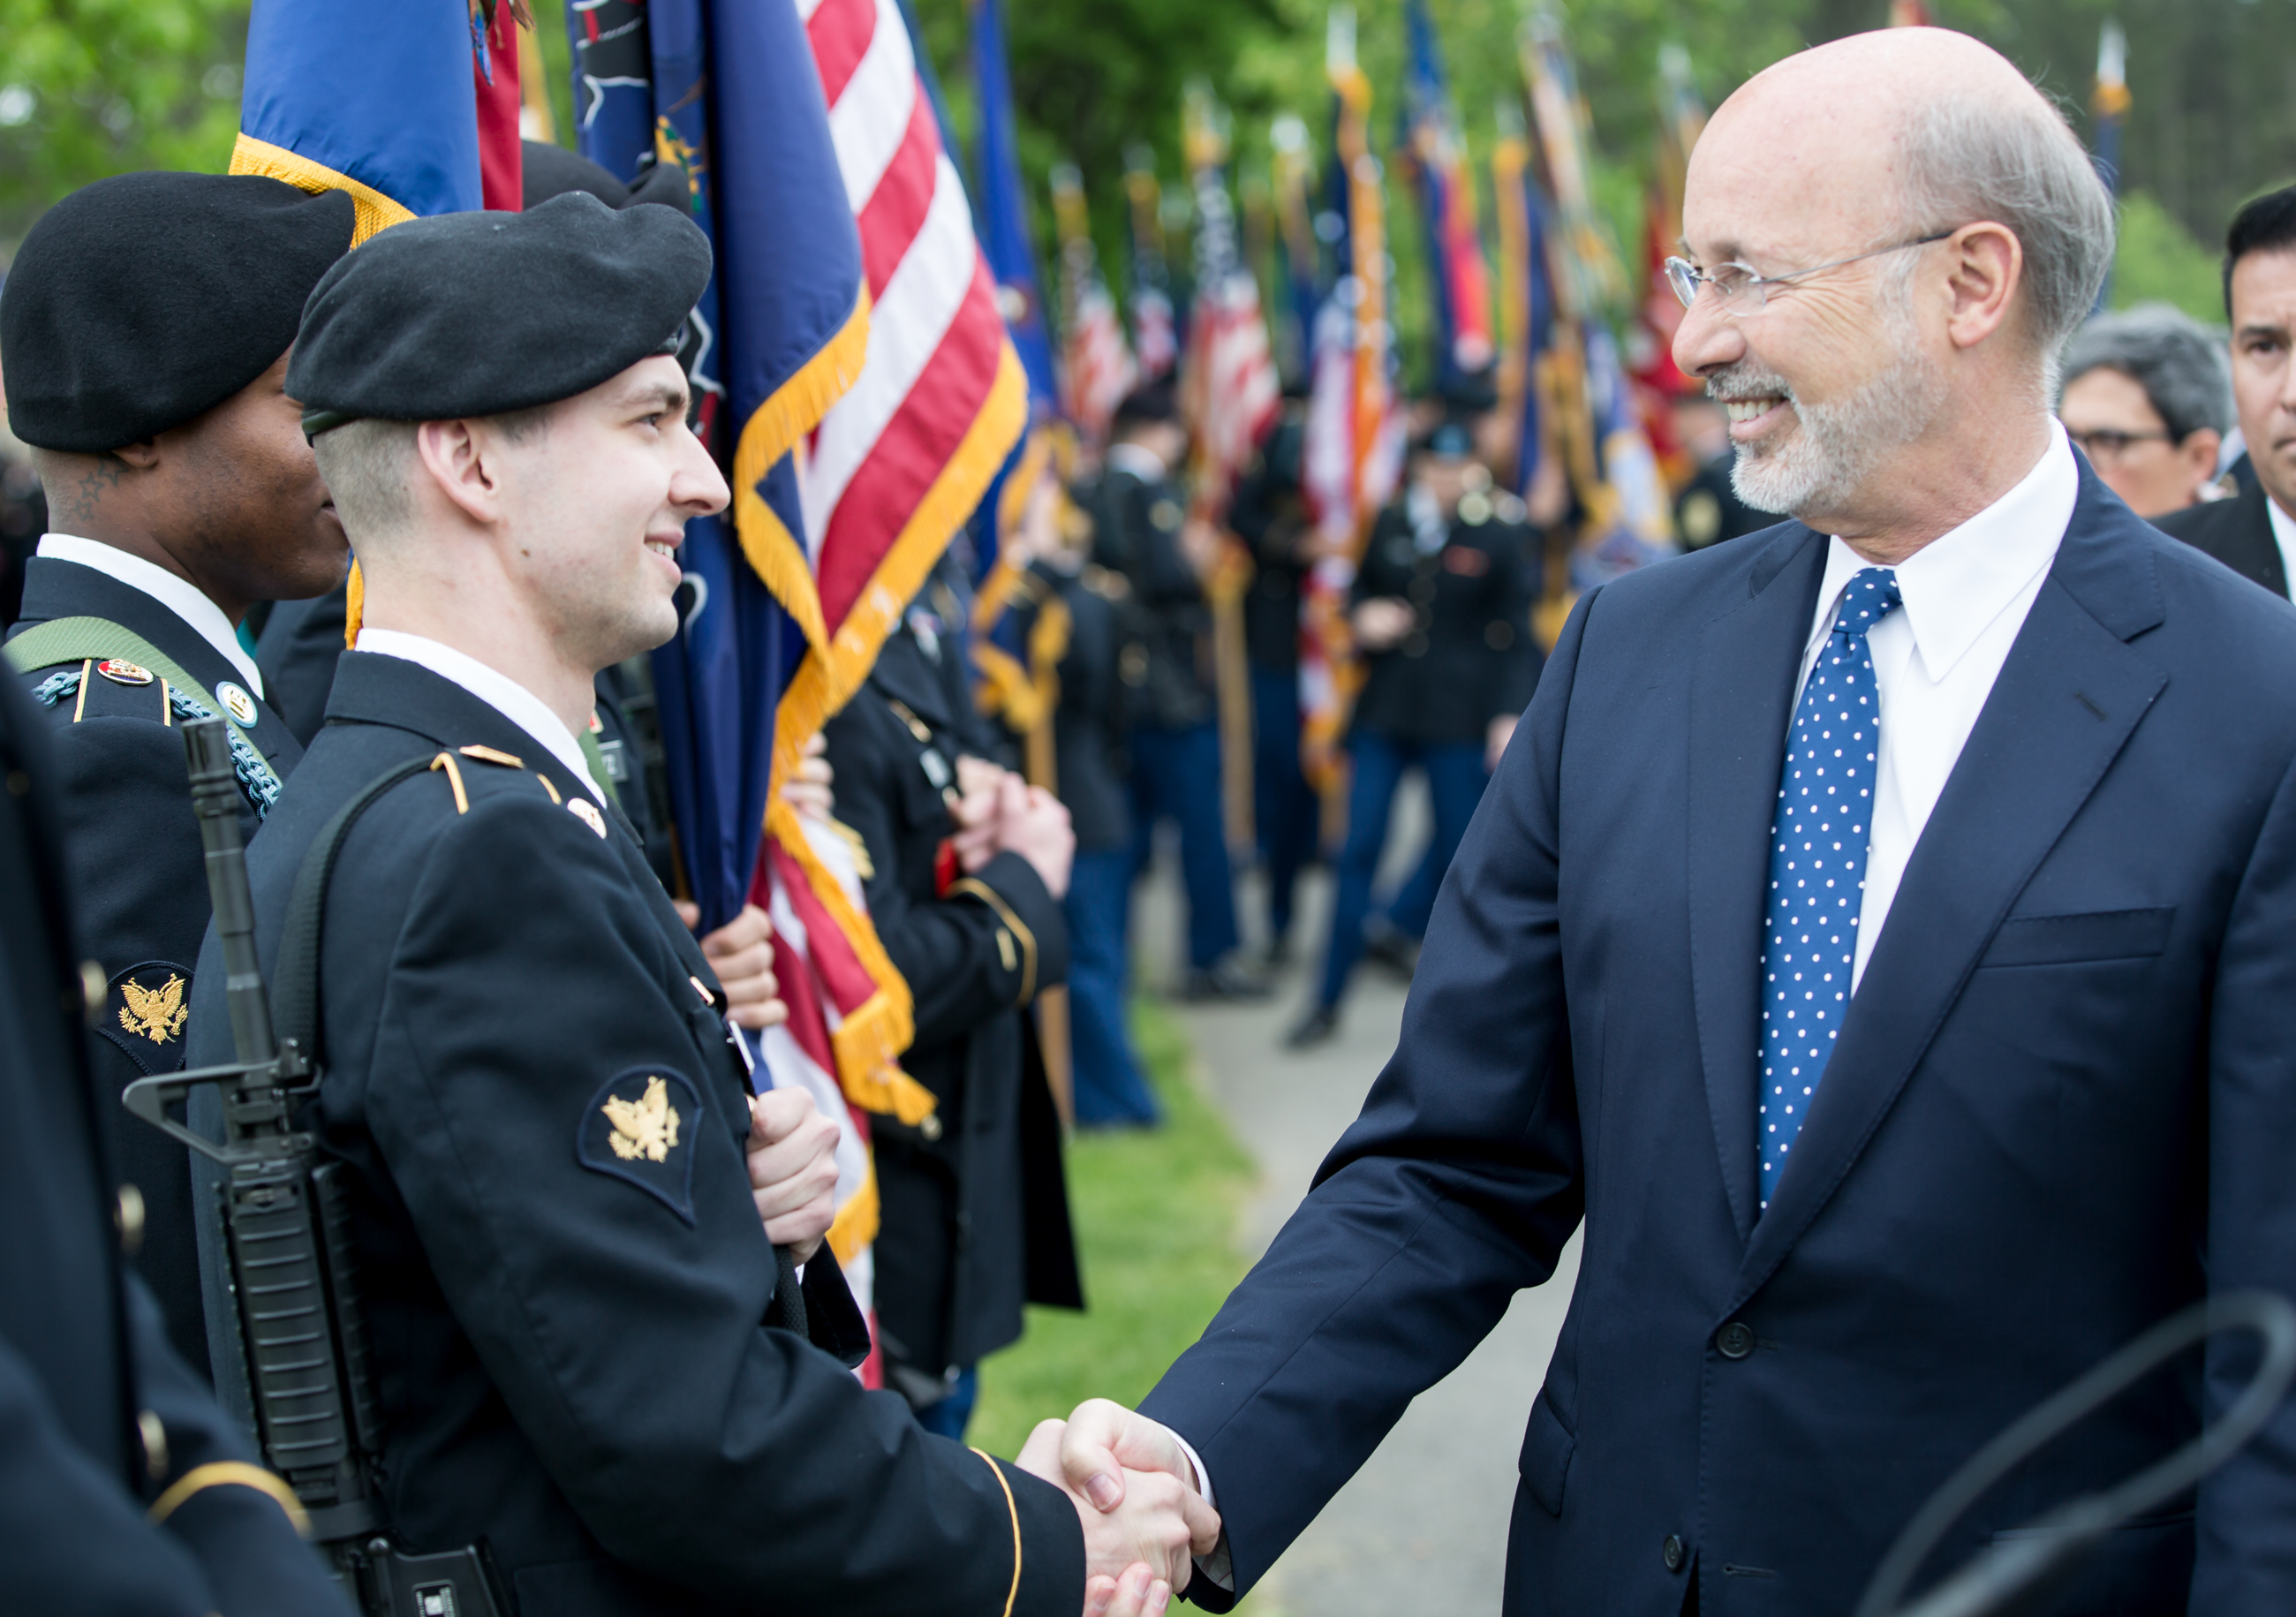 Governor Tom Wolf shaking hands with service member